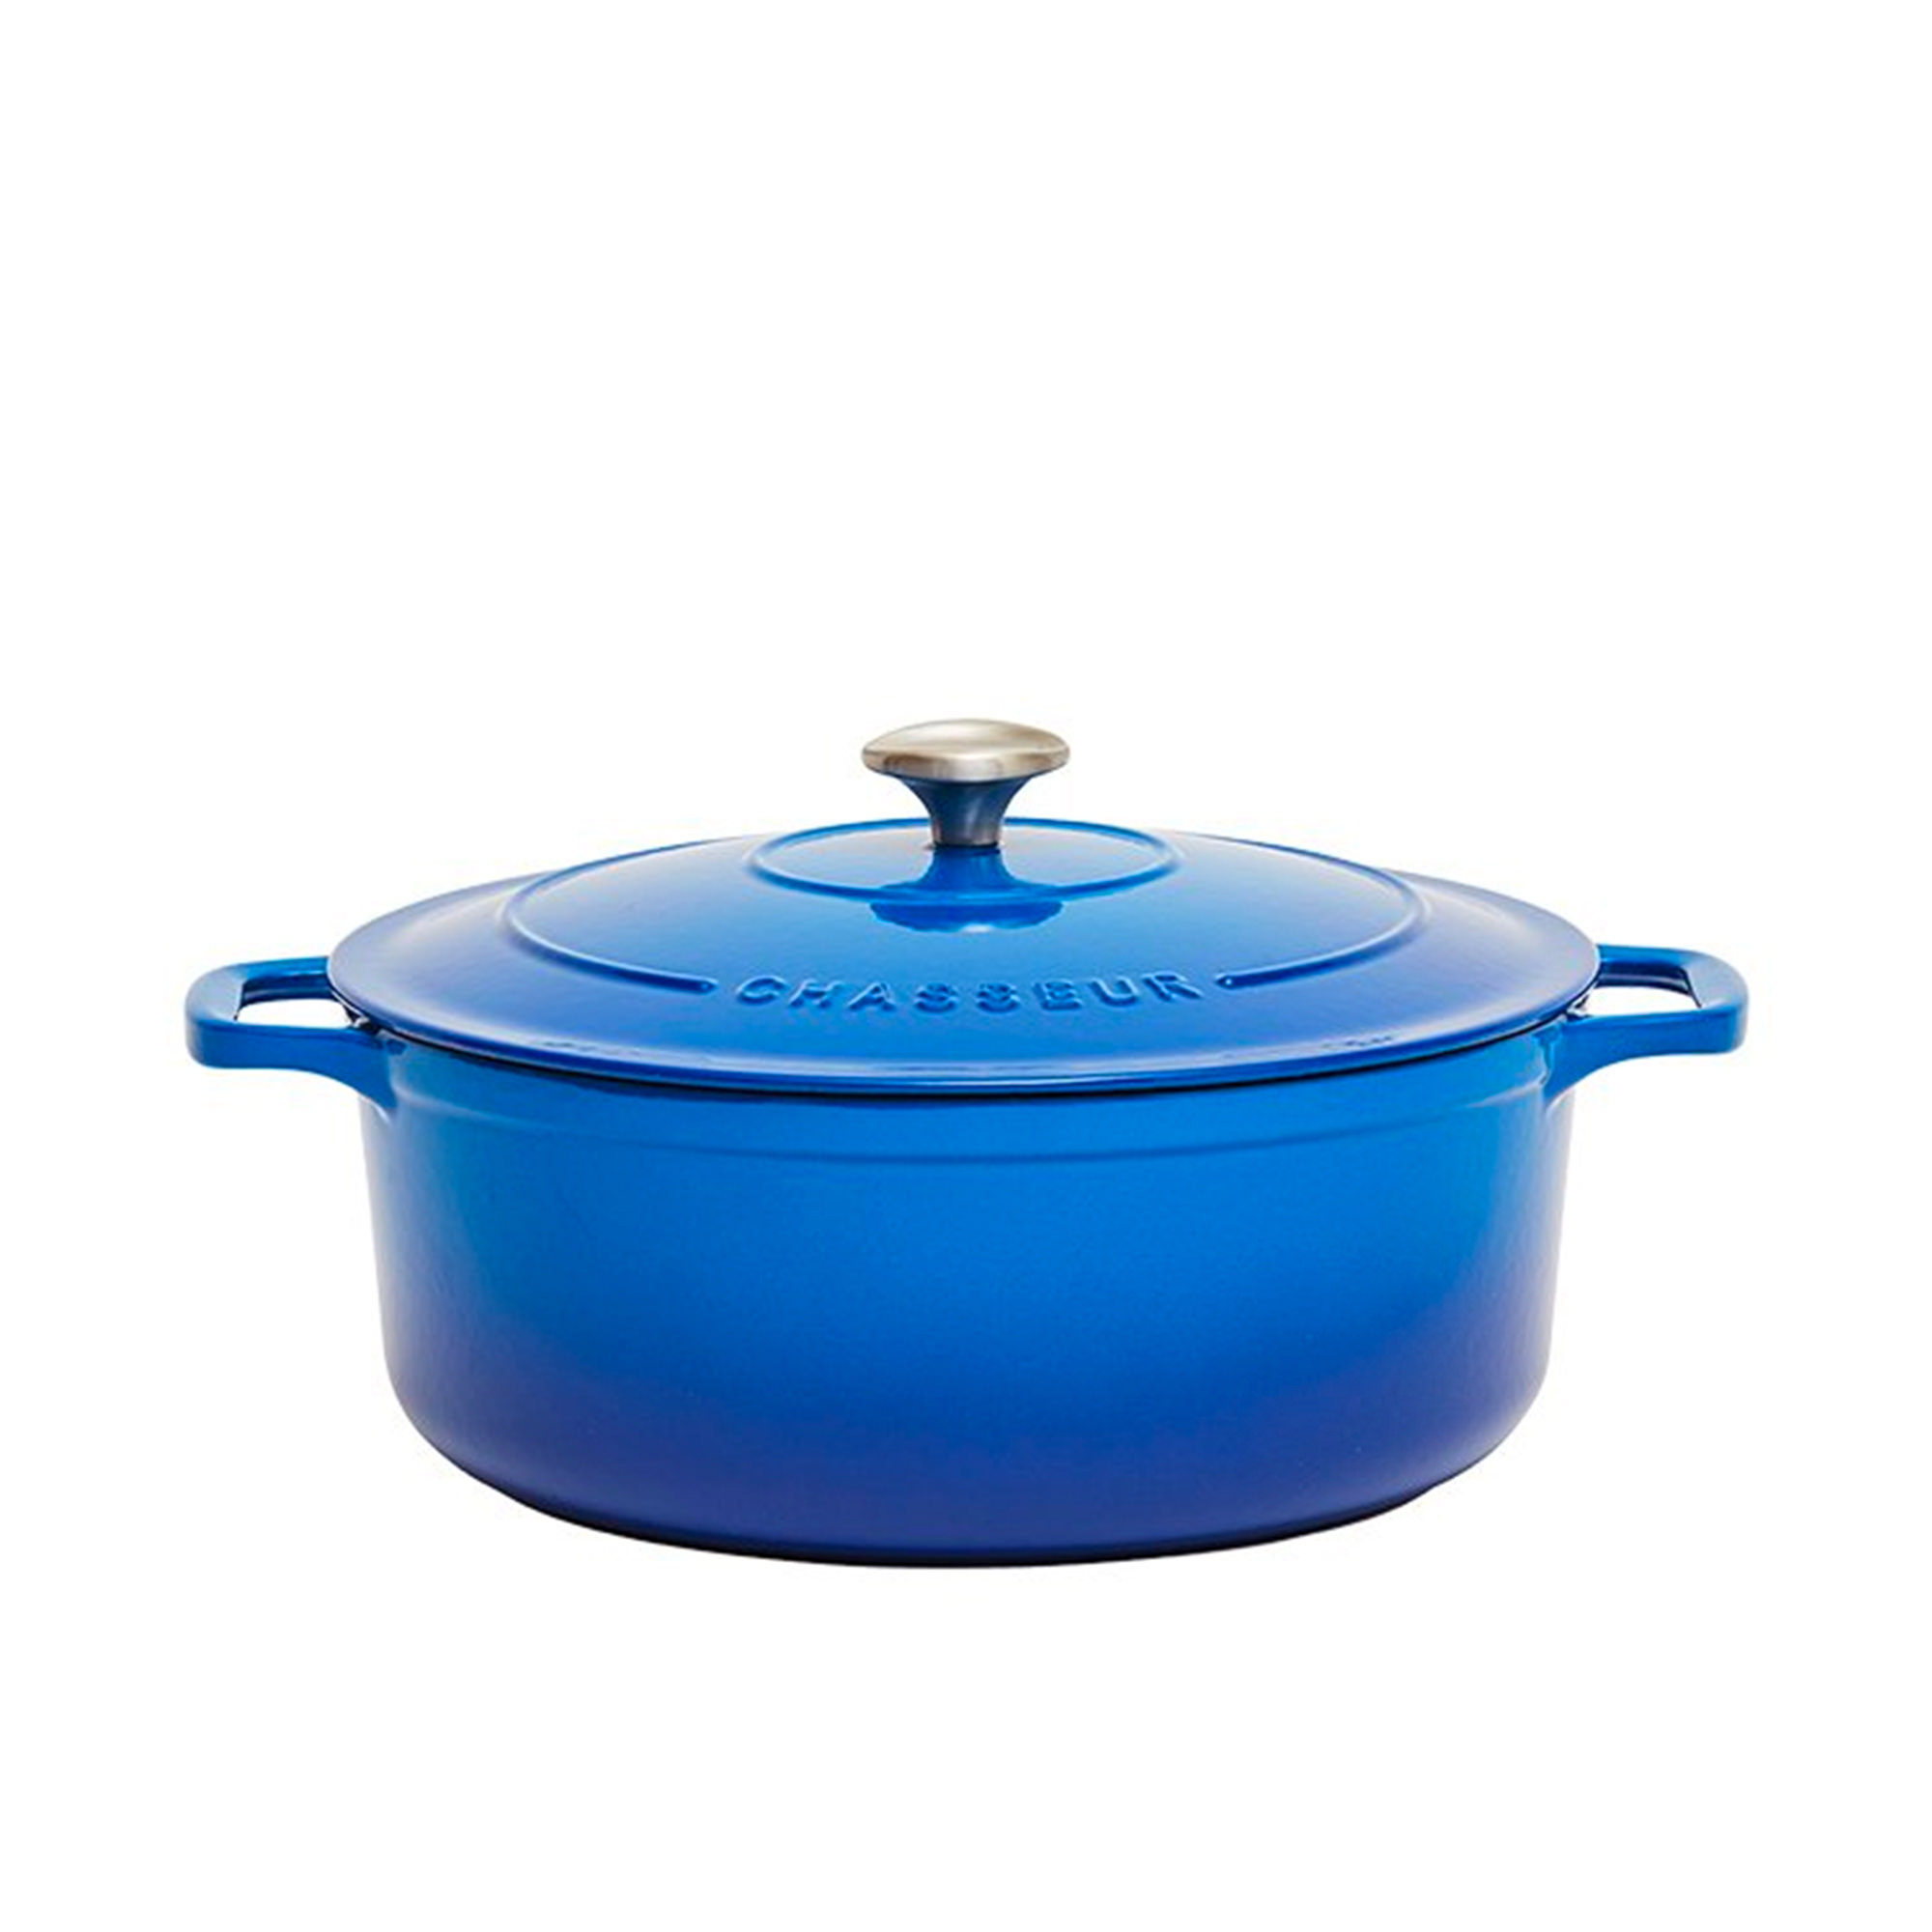 Chasseur Round French Oven 28cm - 6.1L Imperial Blue